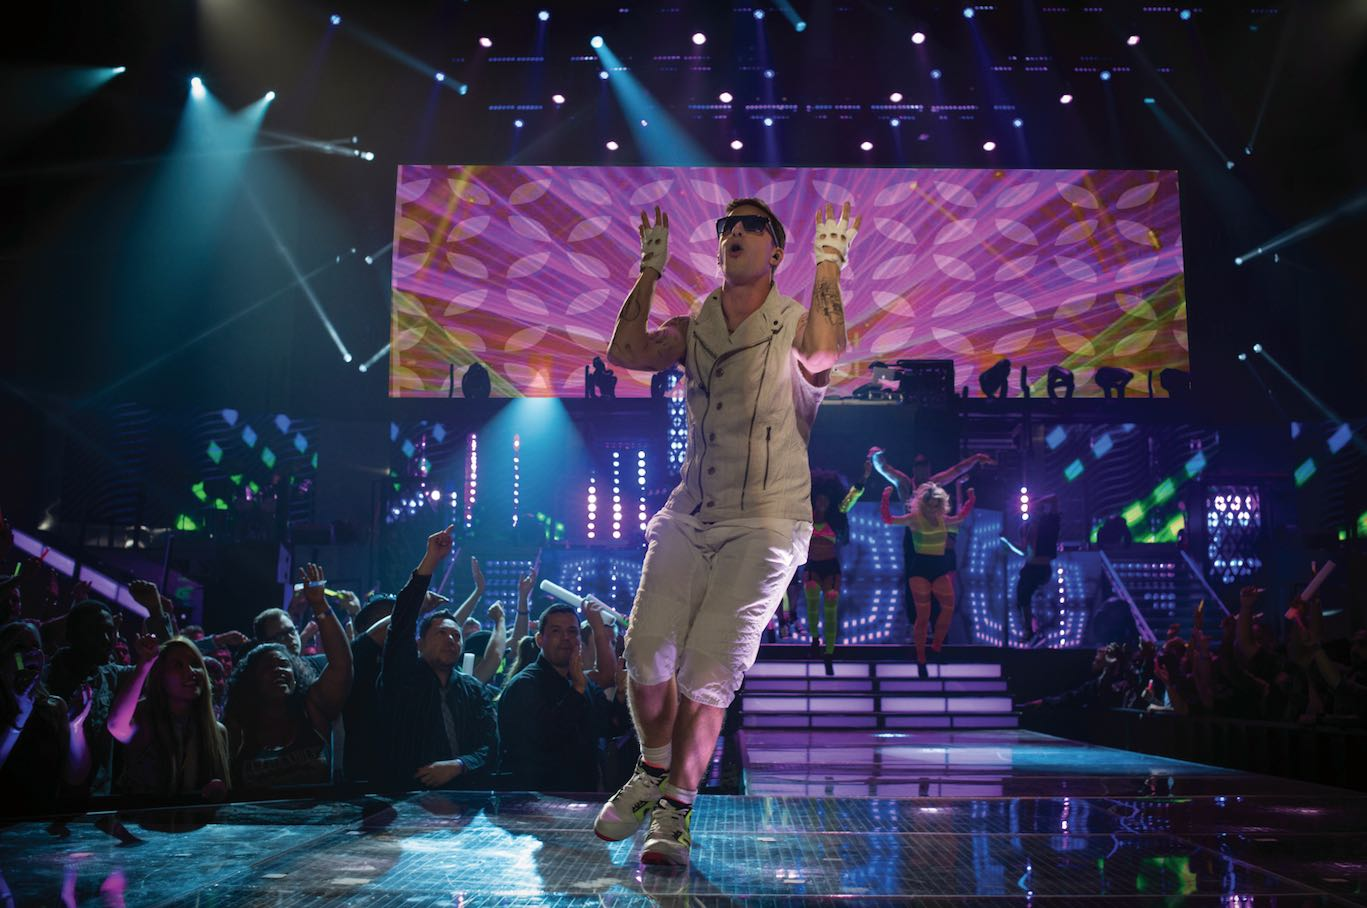 Popstar Andy Samberg Movie Review